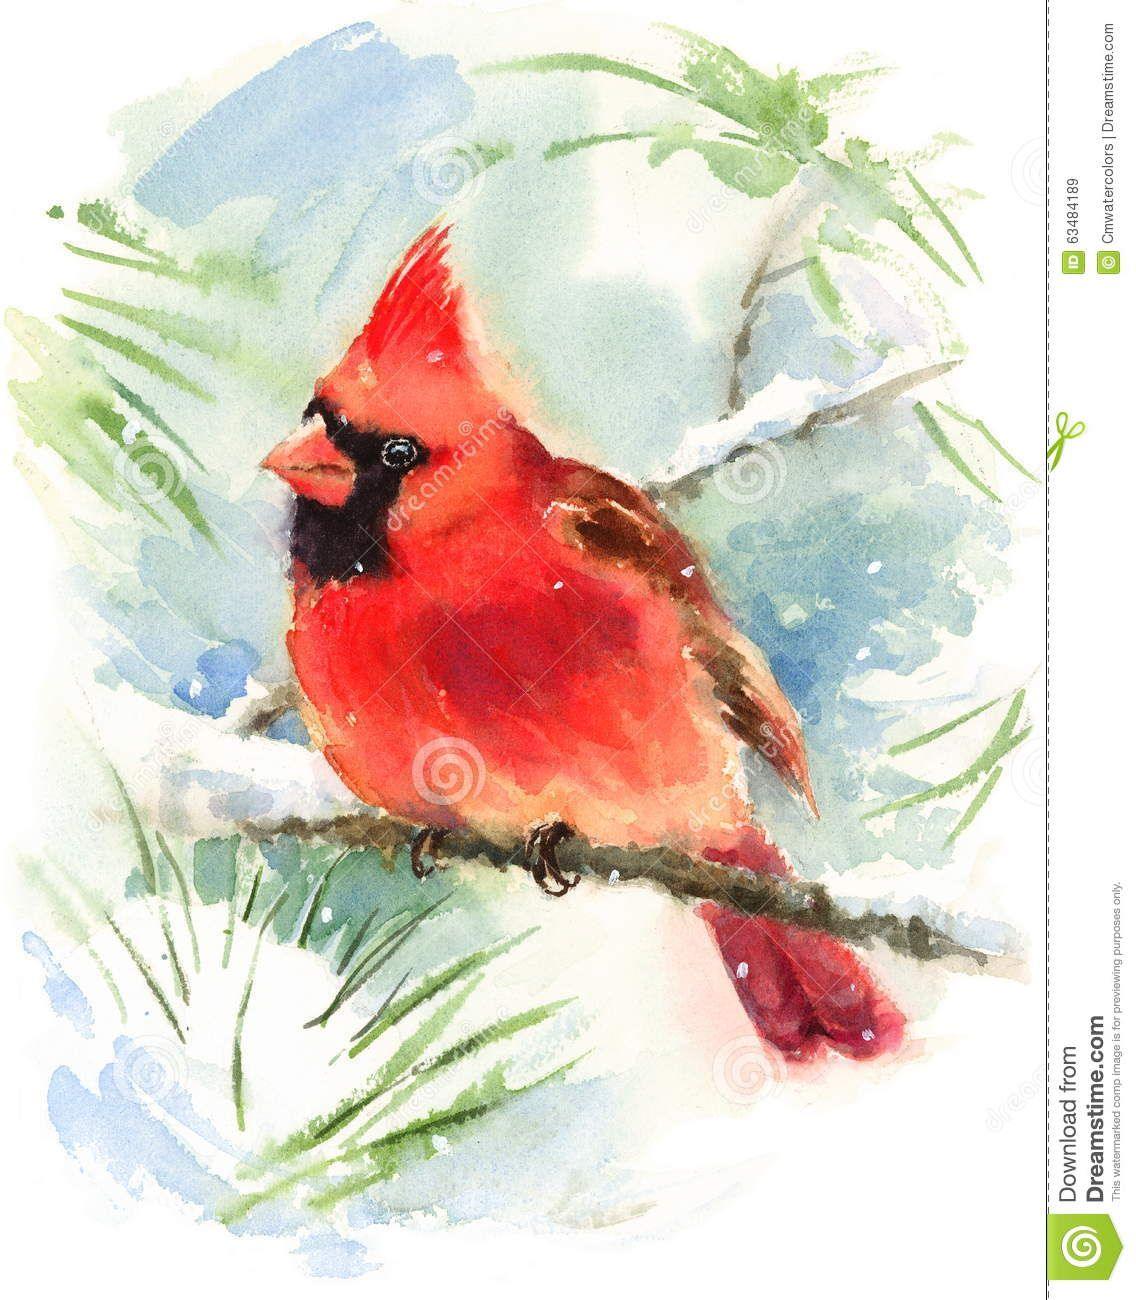 Cardinal Bird Watercolor Winter Illustration Hand Painted - Download From Over 49 Million High Quality Stock Photos, Images, Vectors. Sign up for FREE today. Image: 63484189